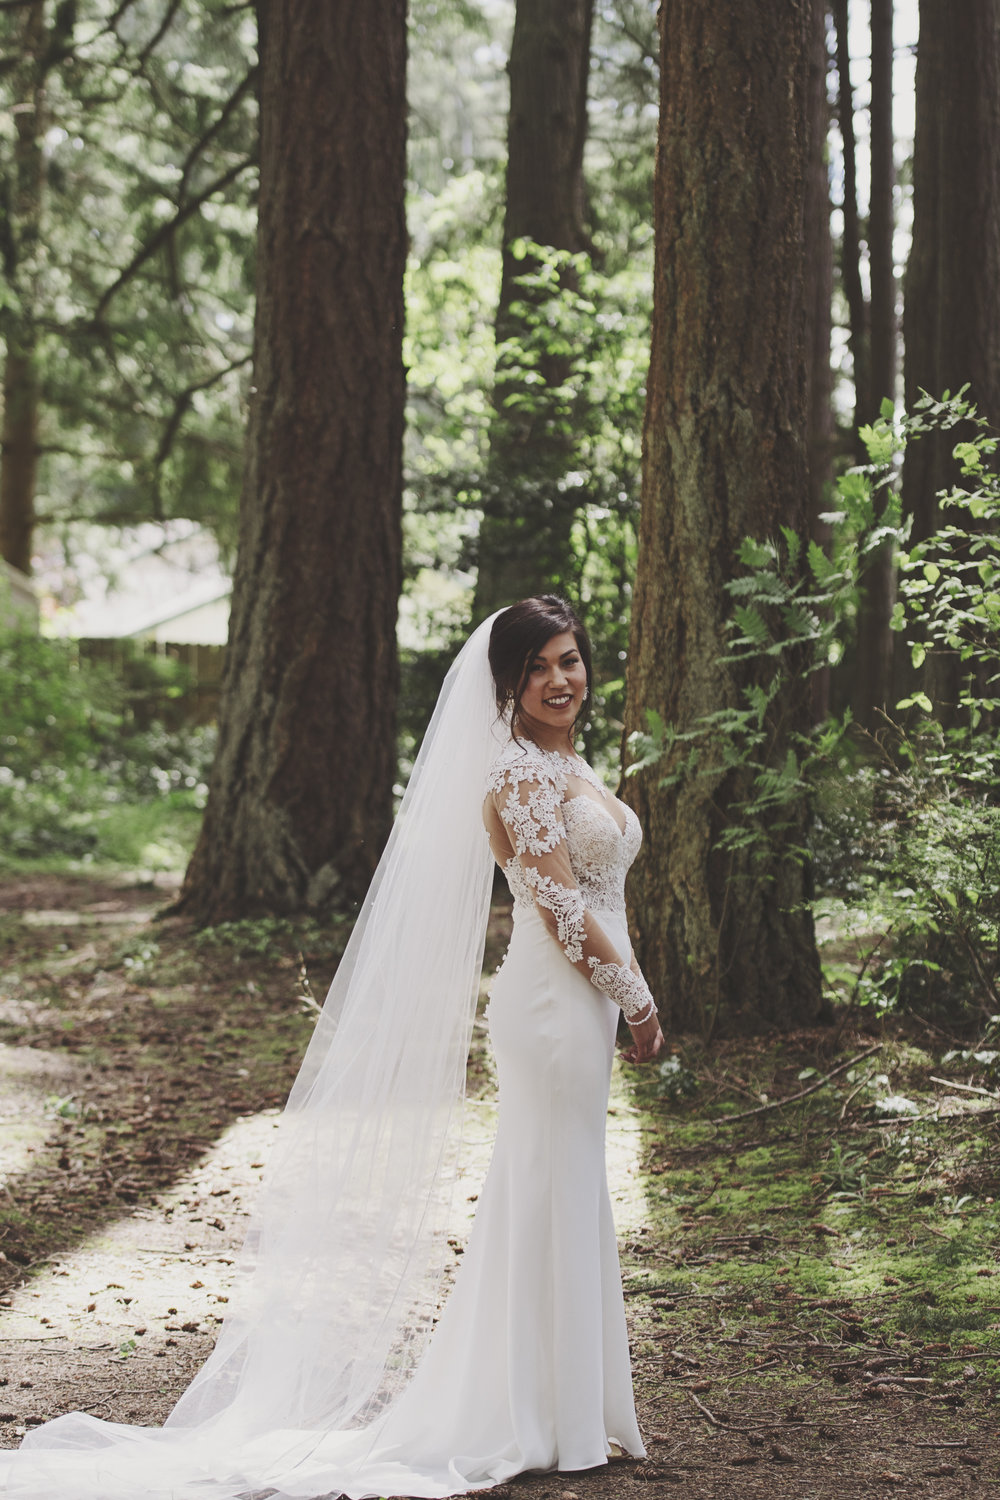 Pacific Northwest Wedding | Forest Wedding | Kitsap Memorial Park Wedding | Kelsey Lane Photography | Bride with Long Veil